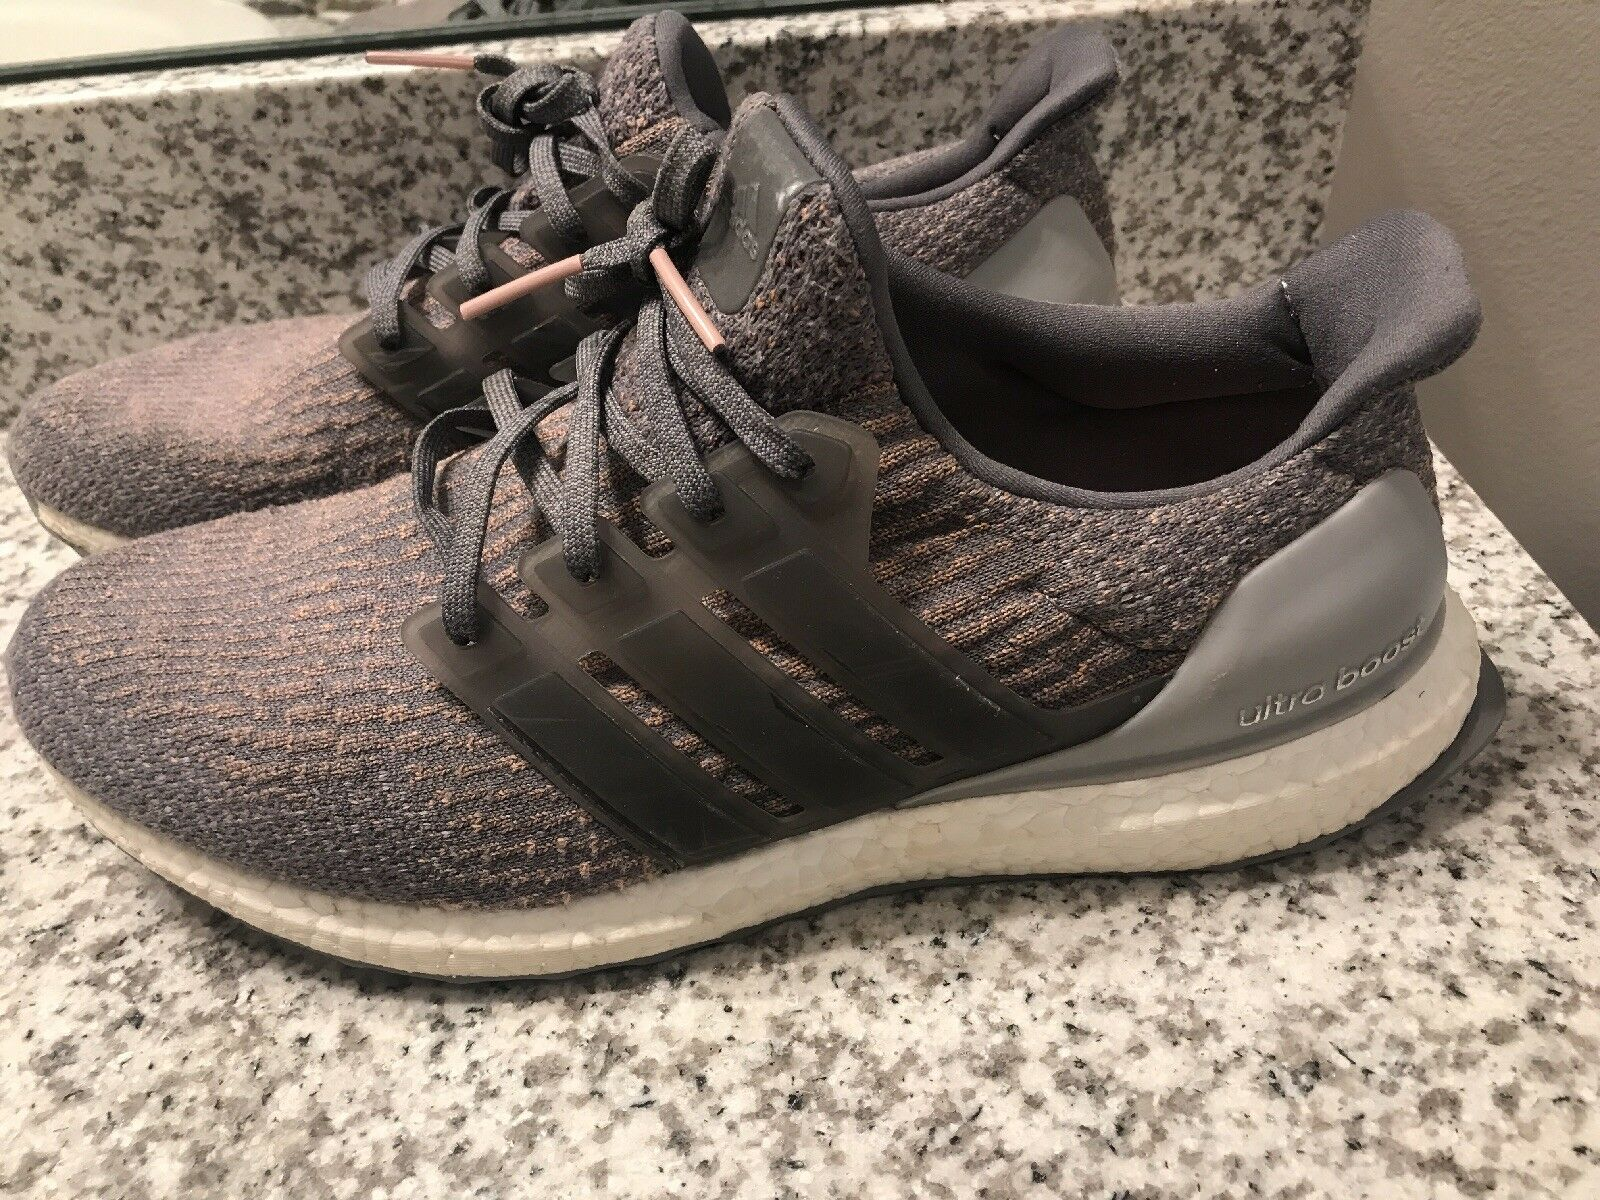 Adidas Ultra Boost 3.0 Primeknit Gray Trace Pink Mens Size Shoes Sneakers S82022